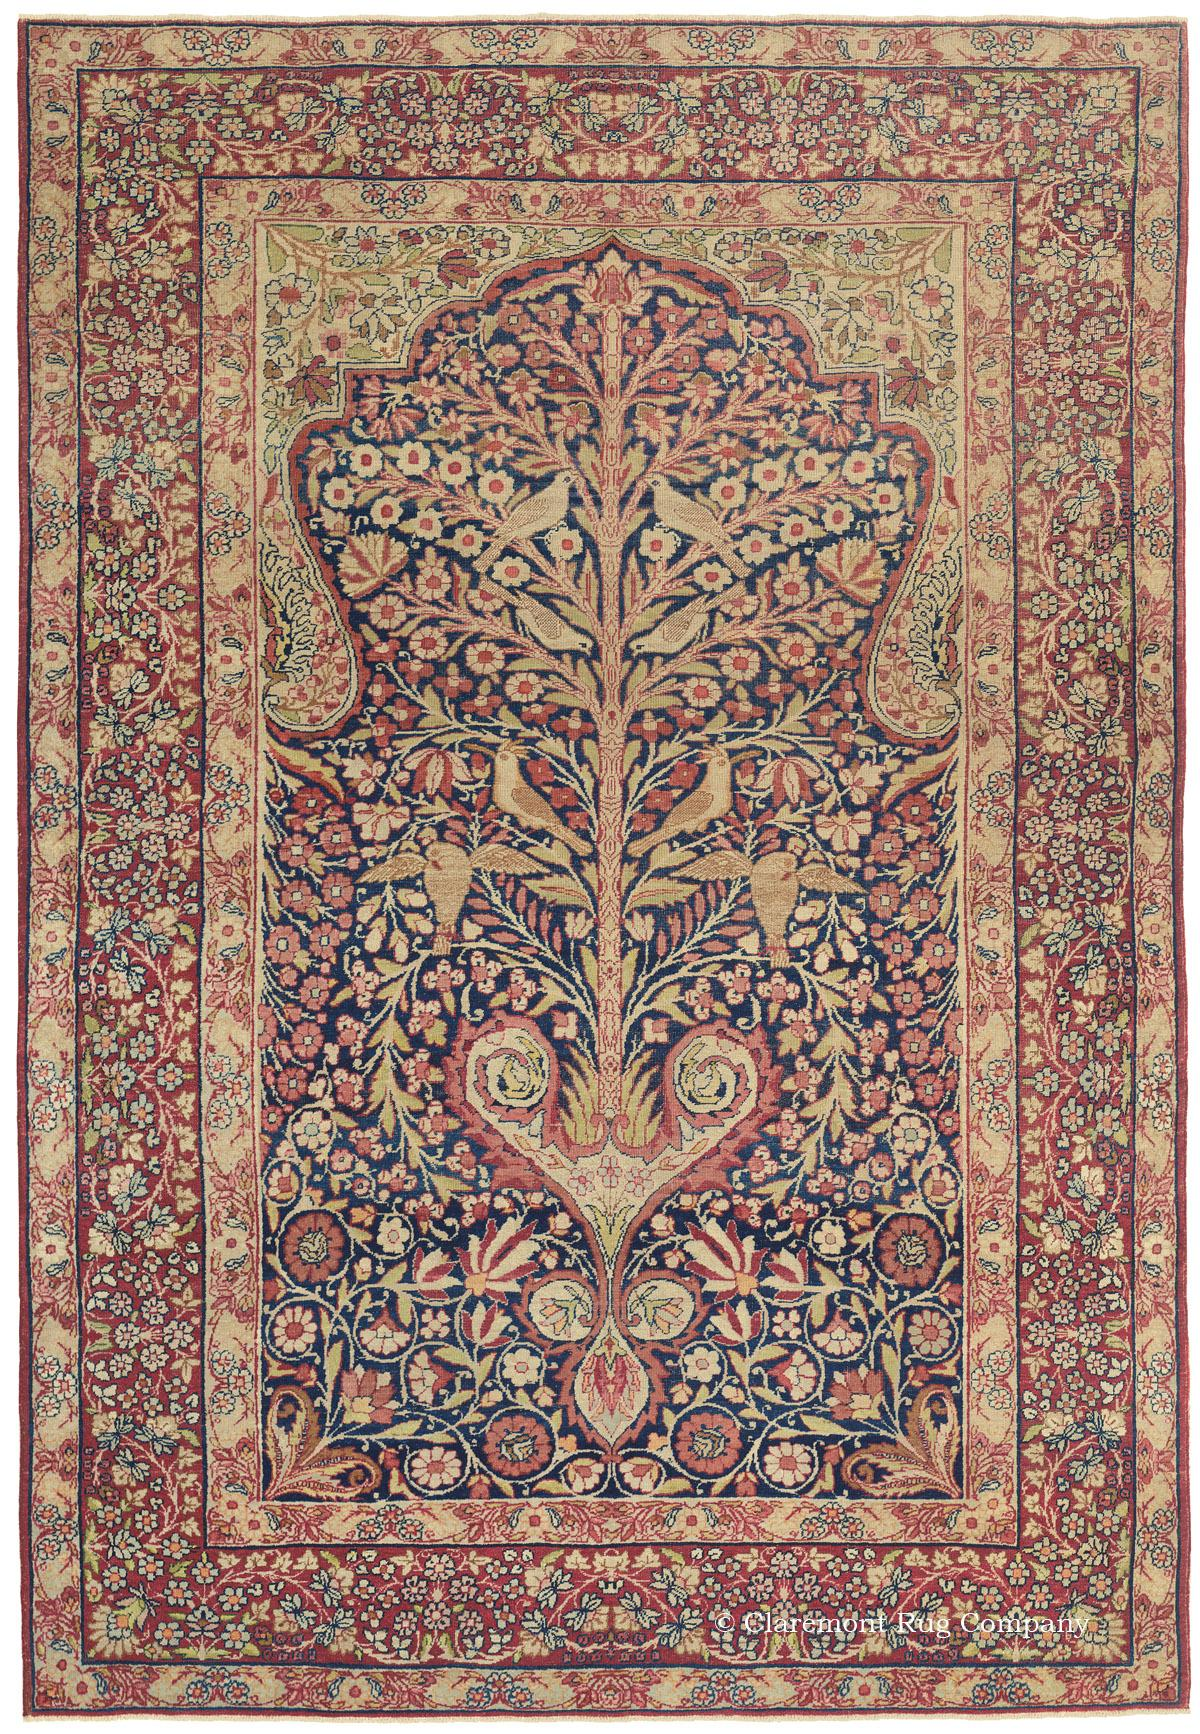 Antique Rug Featuring Tree Of Life Motif